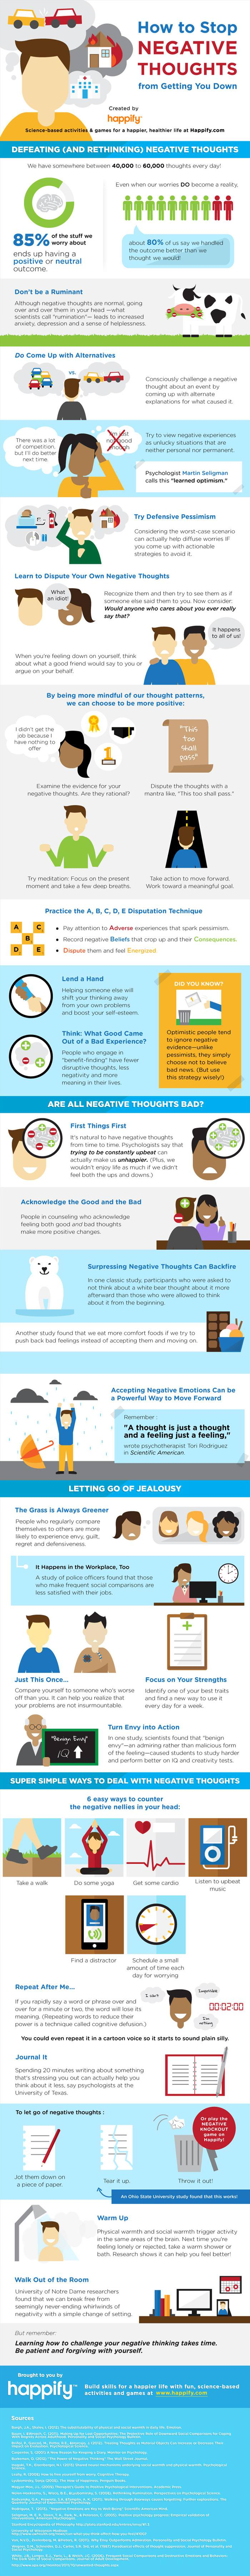 infographic stop negative thouoghts